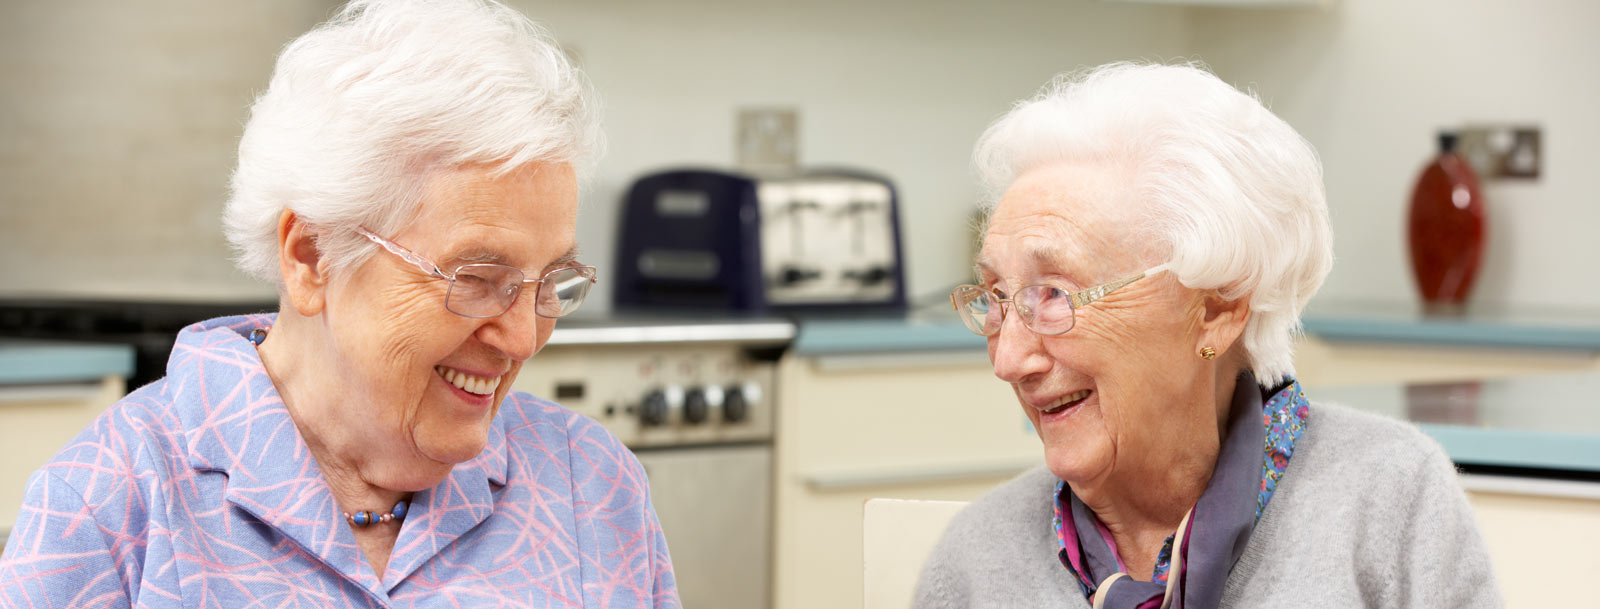 Respite care services at the senior living facility in Clay Center